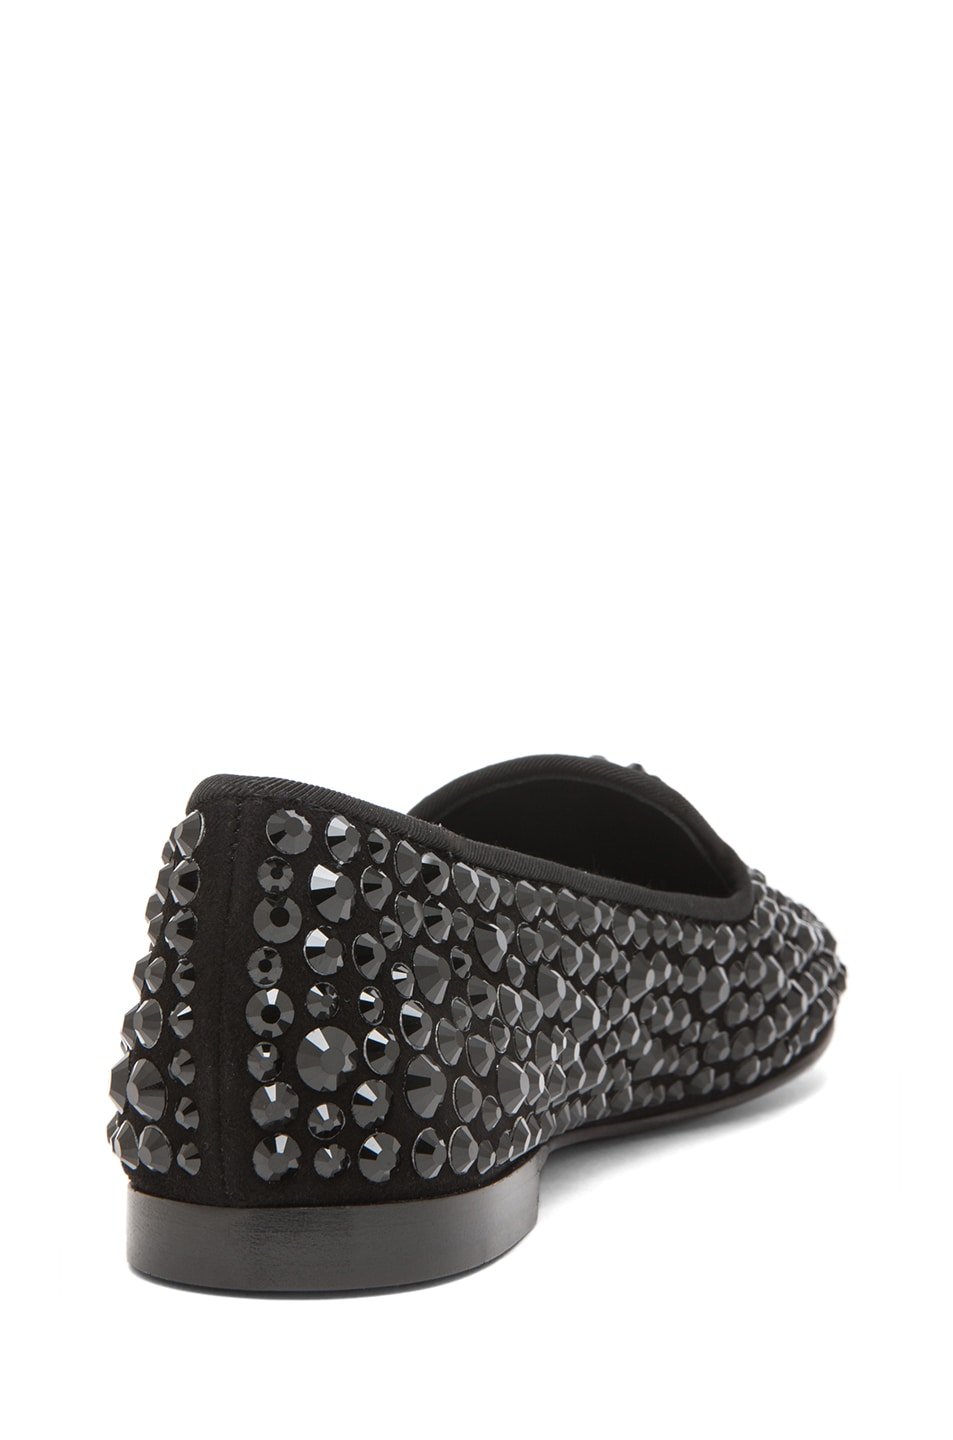 Image 3 of Giuseppe Zanotti Suede Embellished Flats in Black